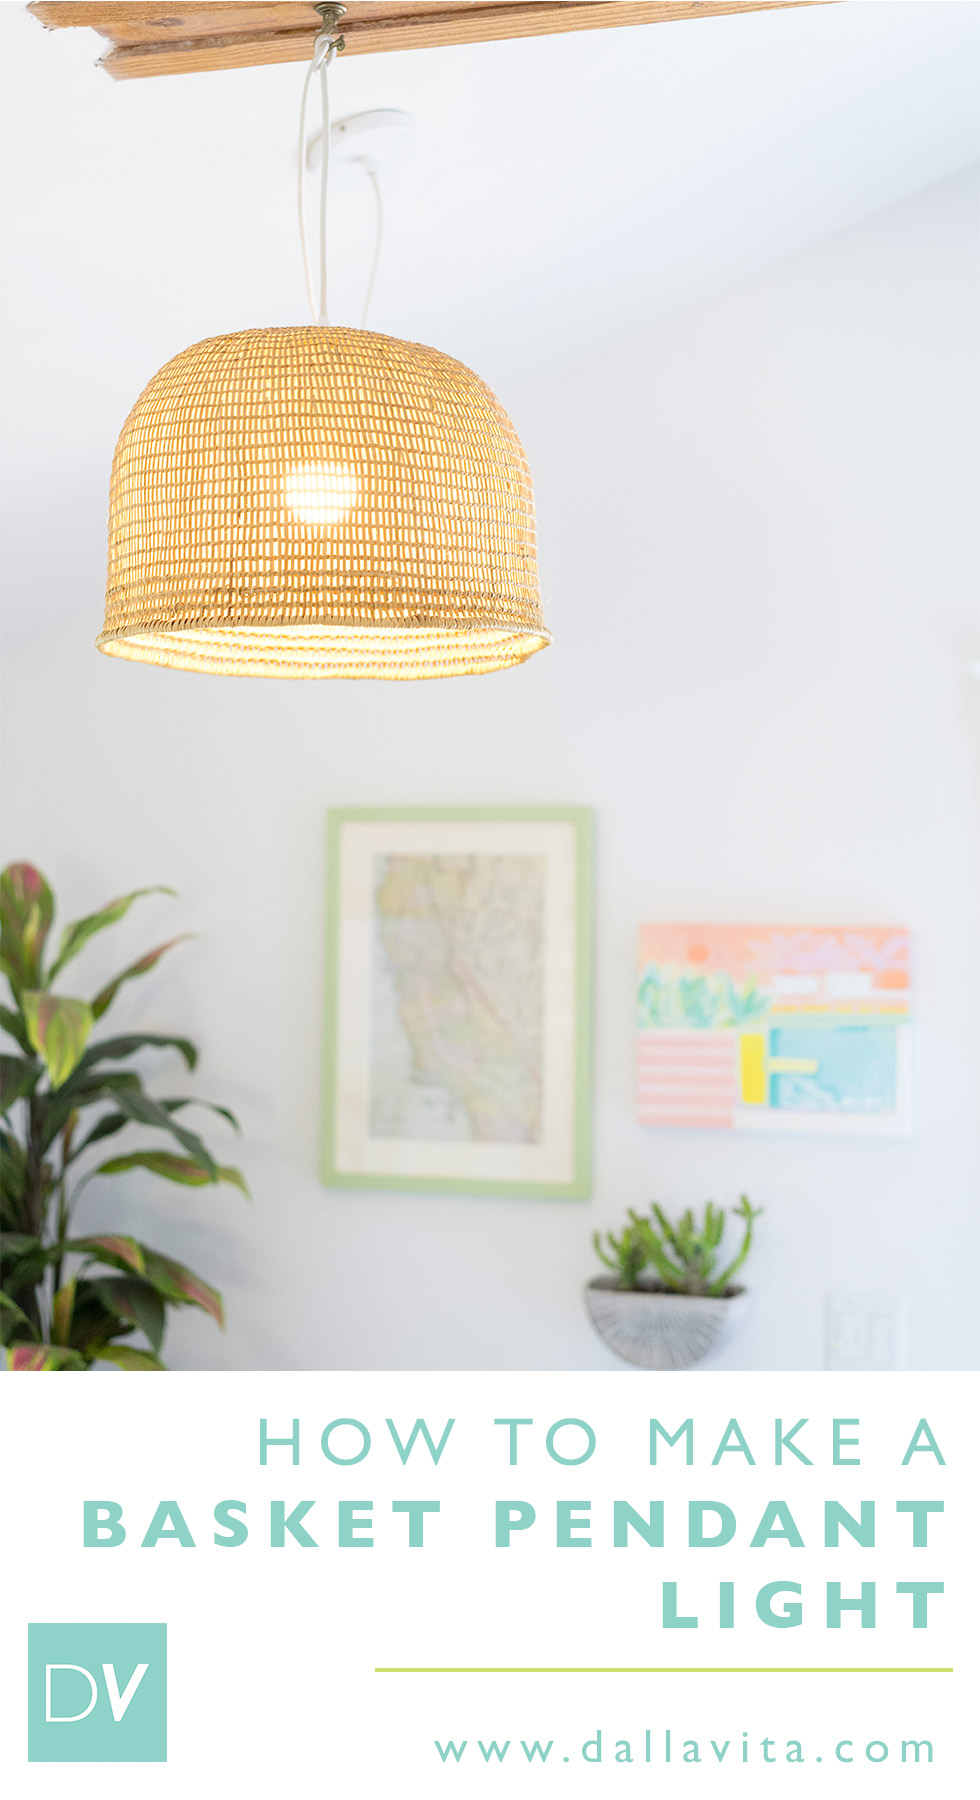 Basket Pendant Light DIY